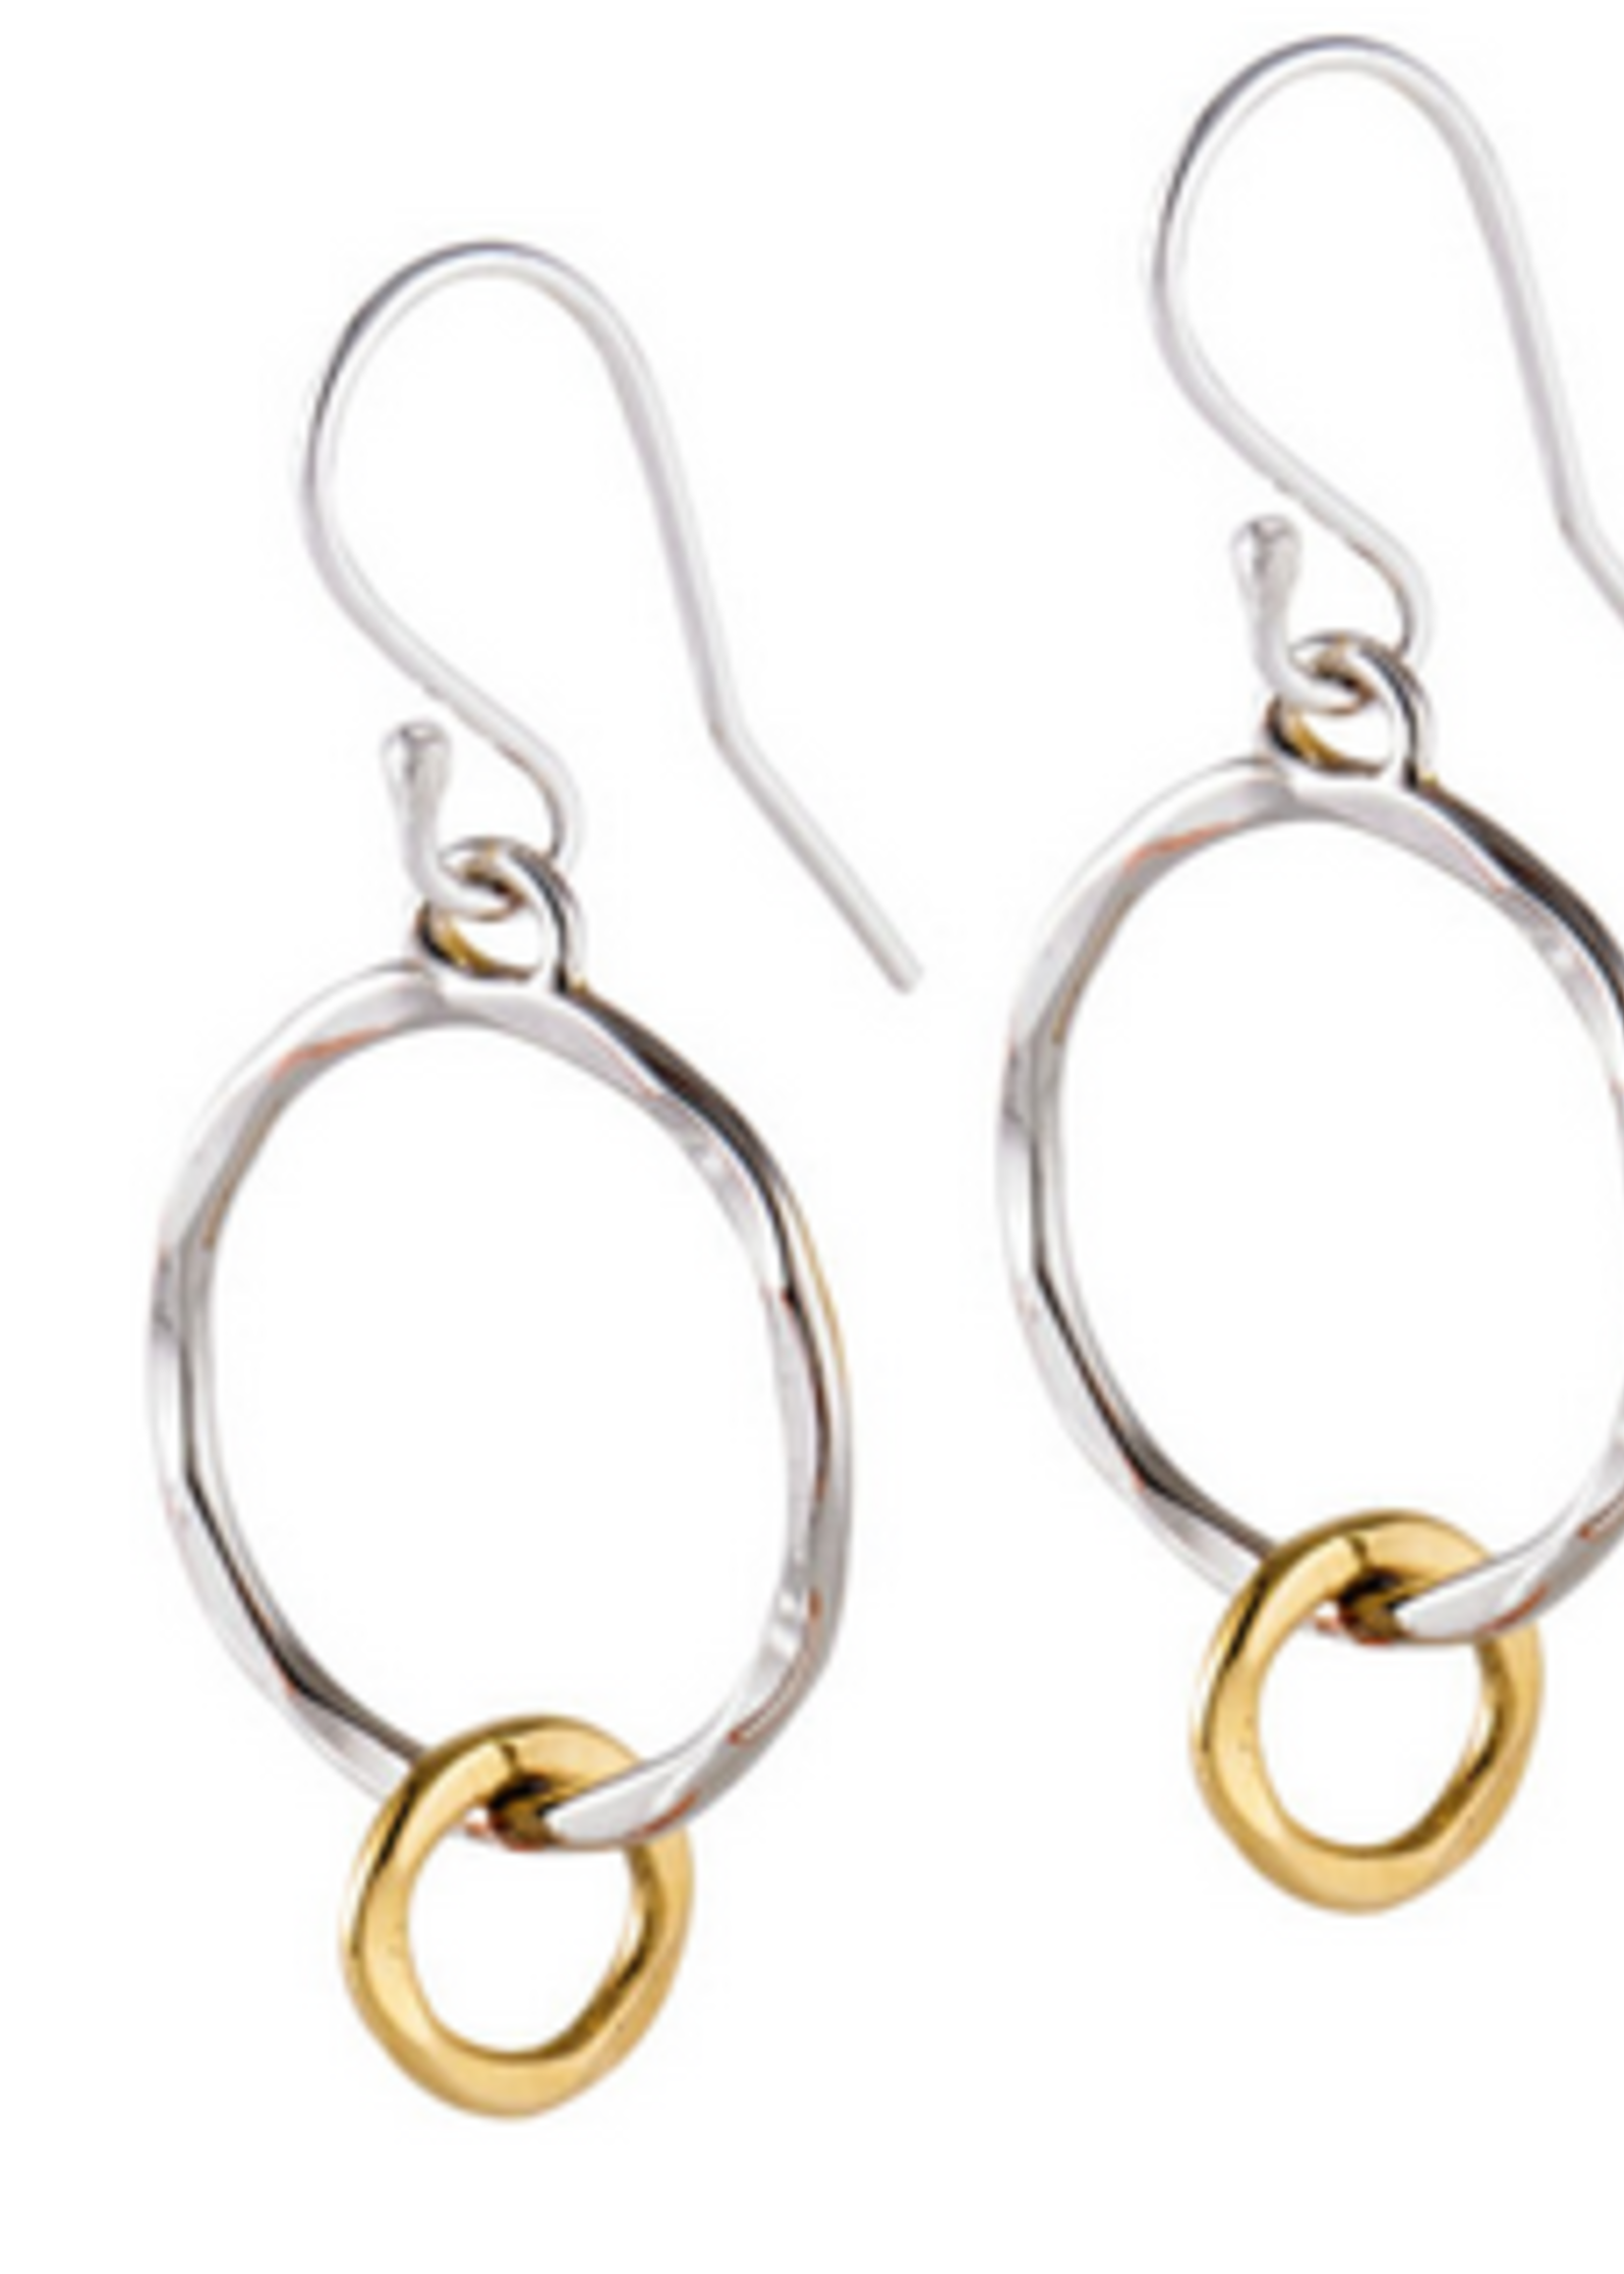 Earrings Silver Circle W/ Gold Plating